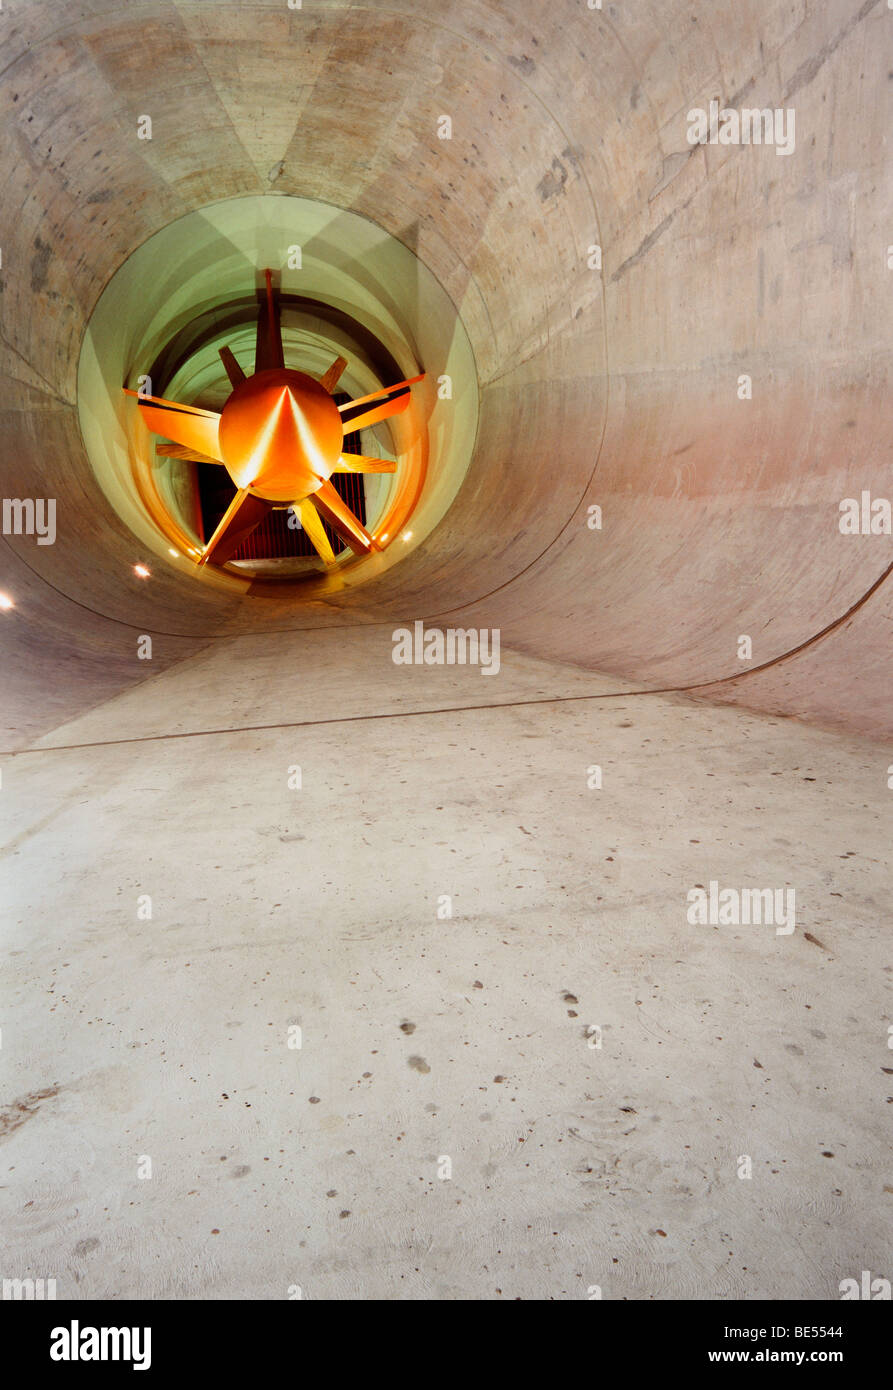 Inside of a Wind tunnel - Stock Image